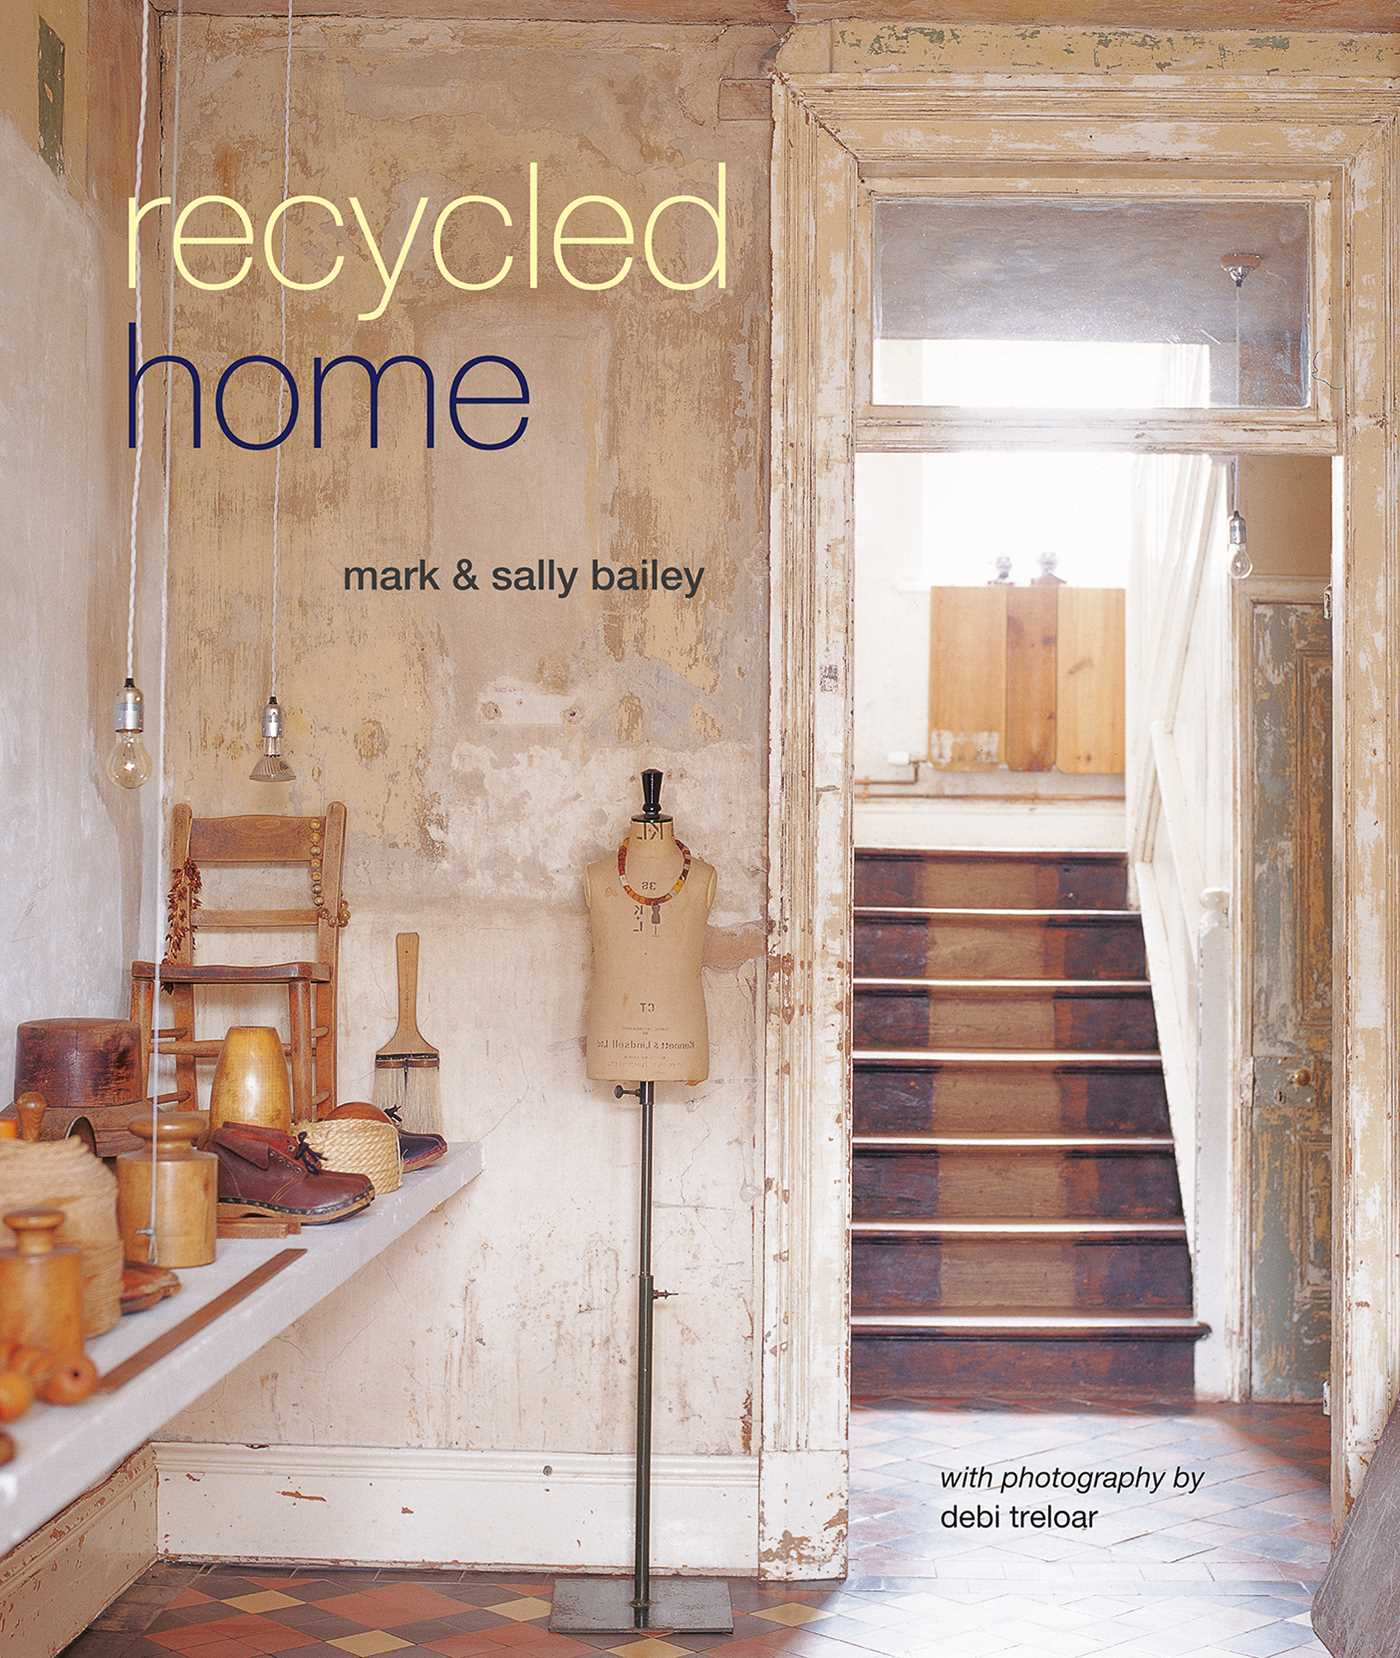 Recycled home 9781849758796 hr